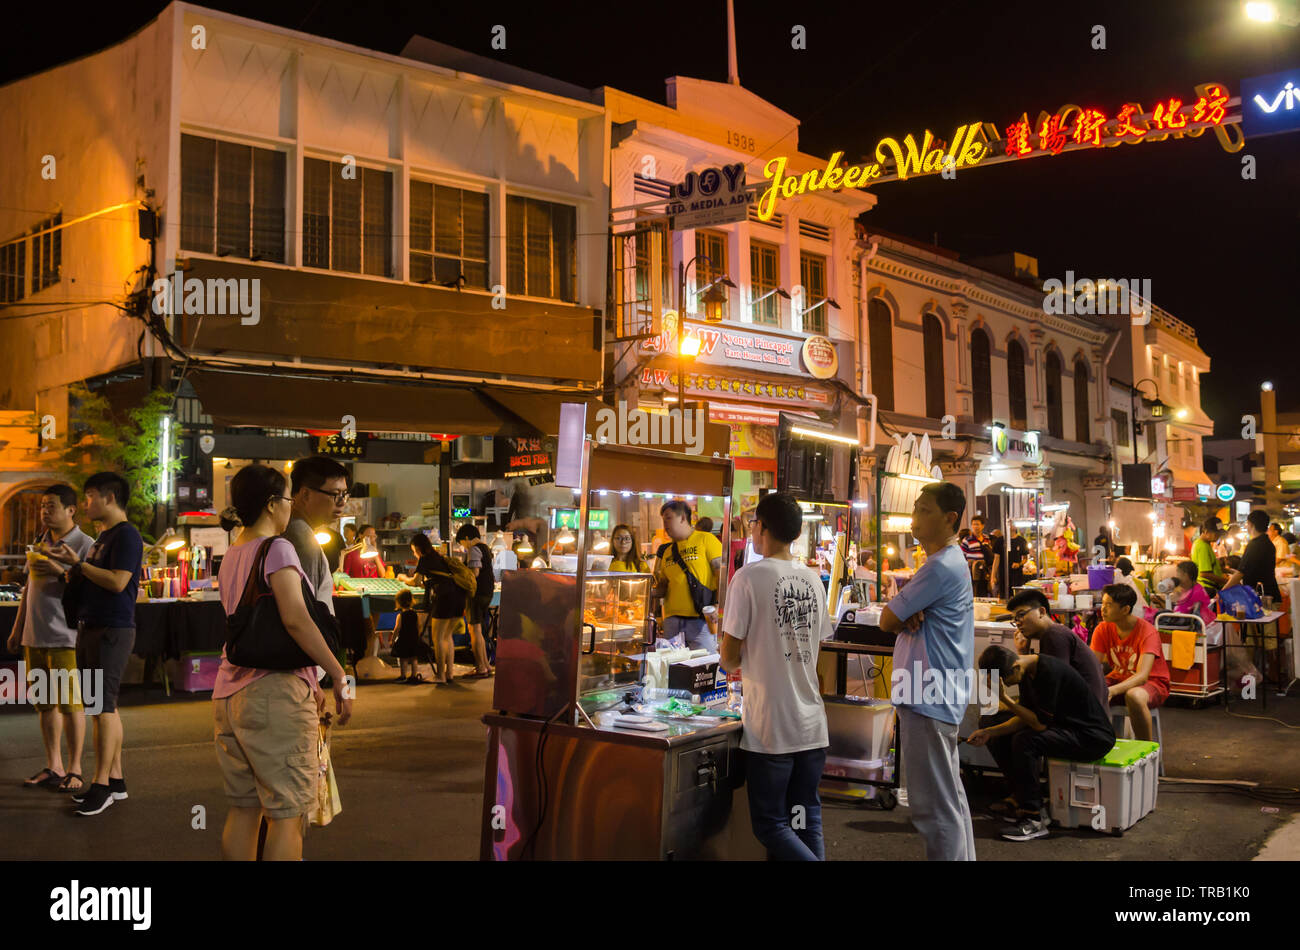 Malacca,Malaysia - April 21,2019 : The night market on Friday,Saturday and Sunday is the best part of the Jonker Street, it sells everything from tast - Stock Image